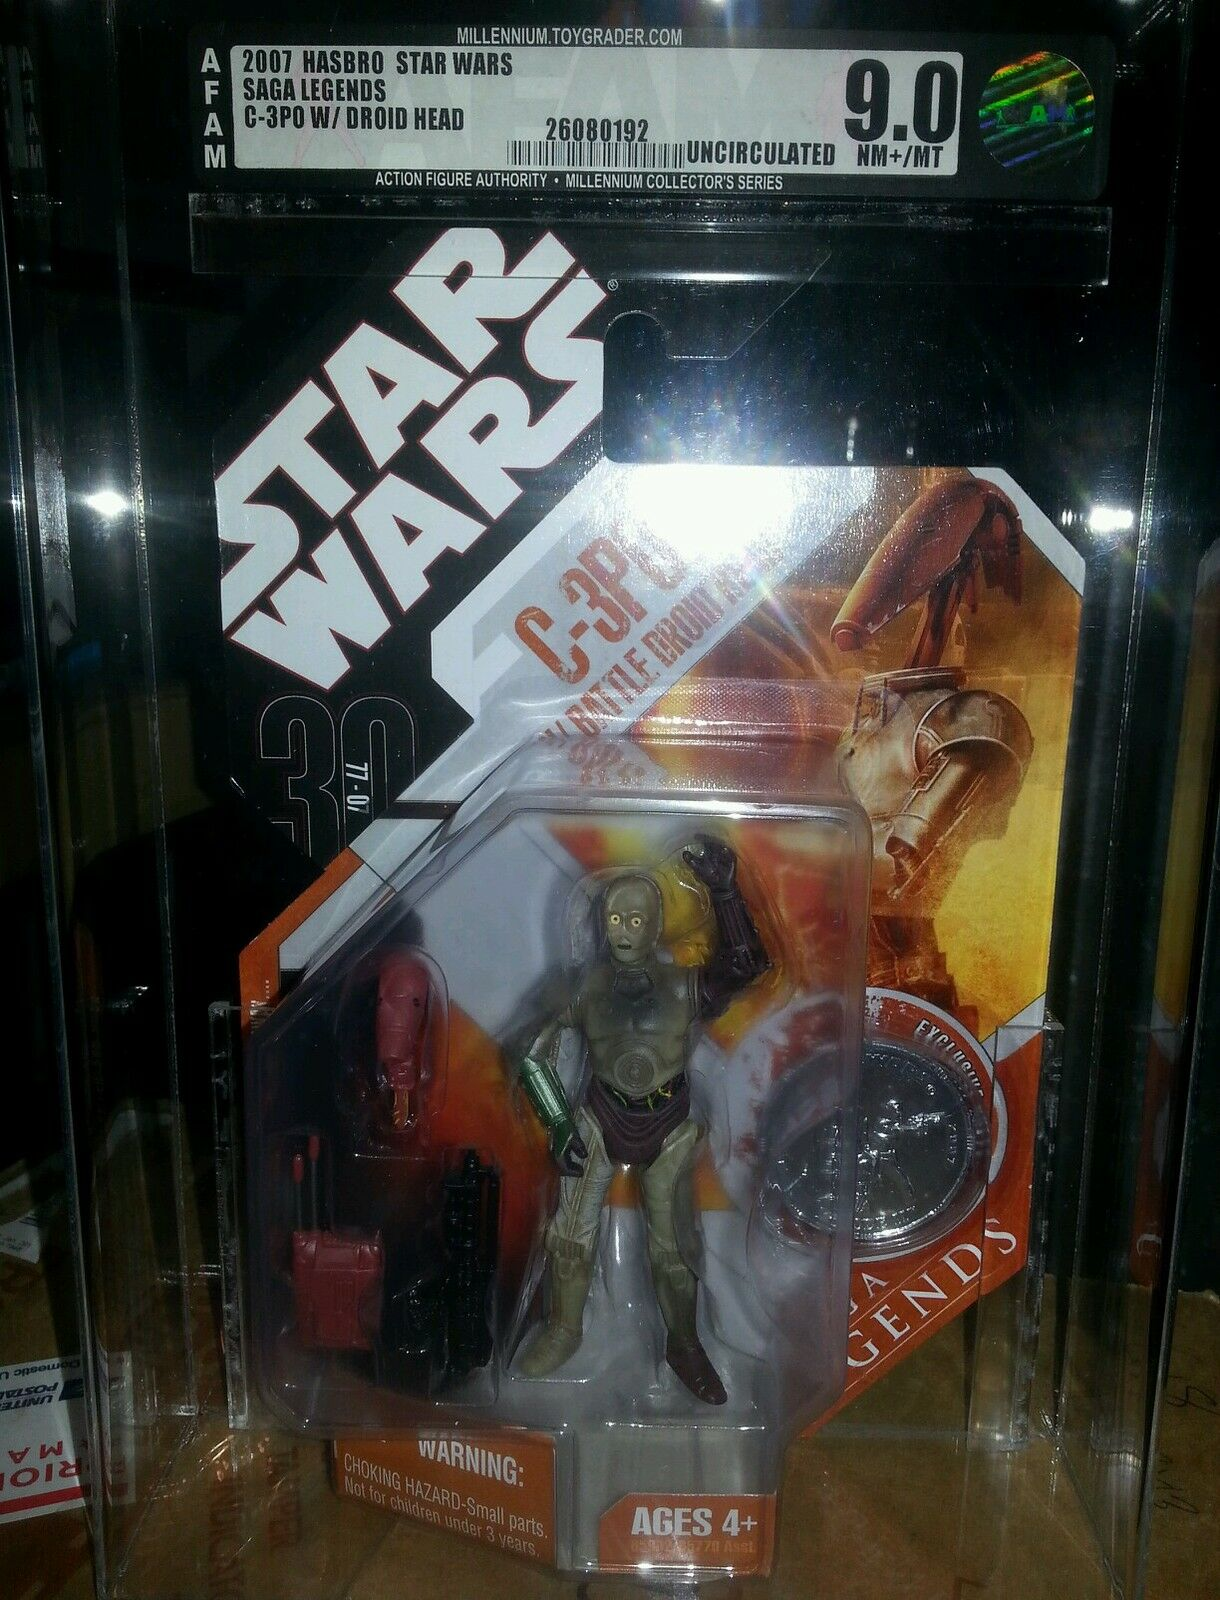 C - 3po mit star - wars - saga um kopf legenden tac afa 9,0 uncirculated